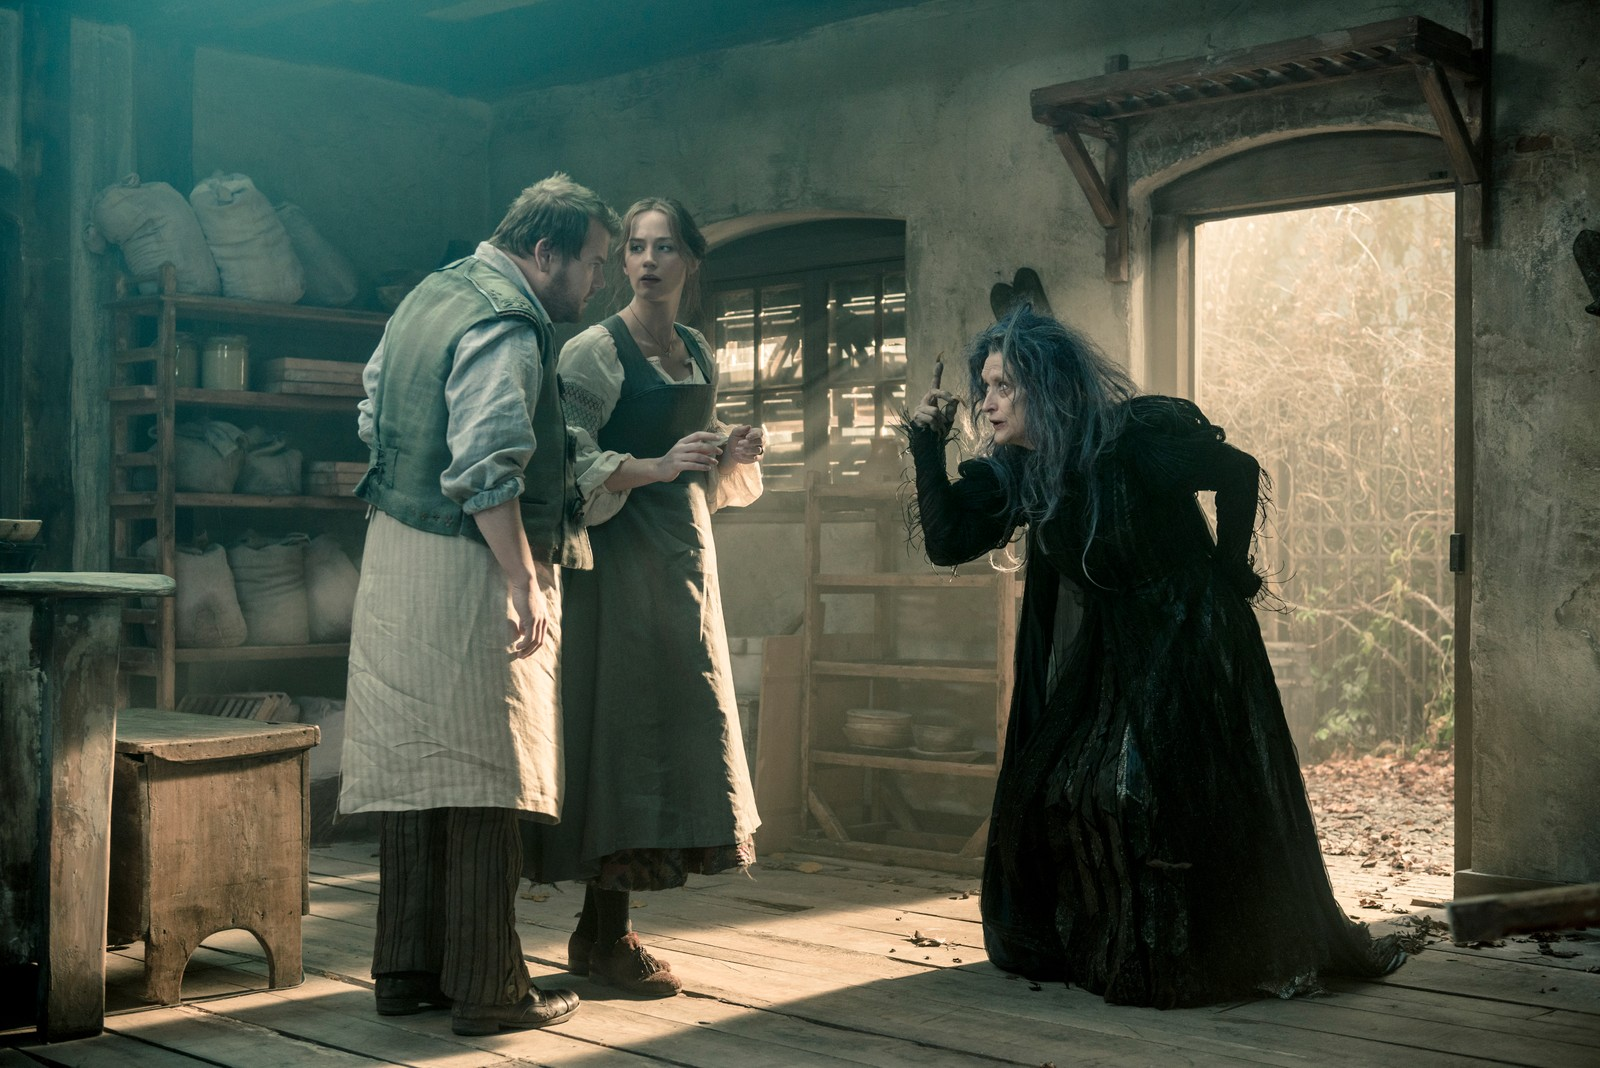 NOMINERT BESTE KVINNELIGE BIROLLE: Meryl Streep i «Into The Woods».